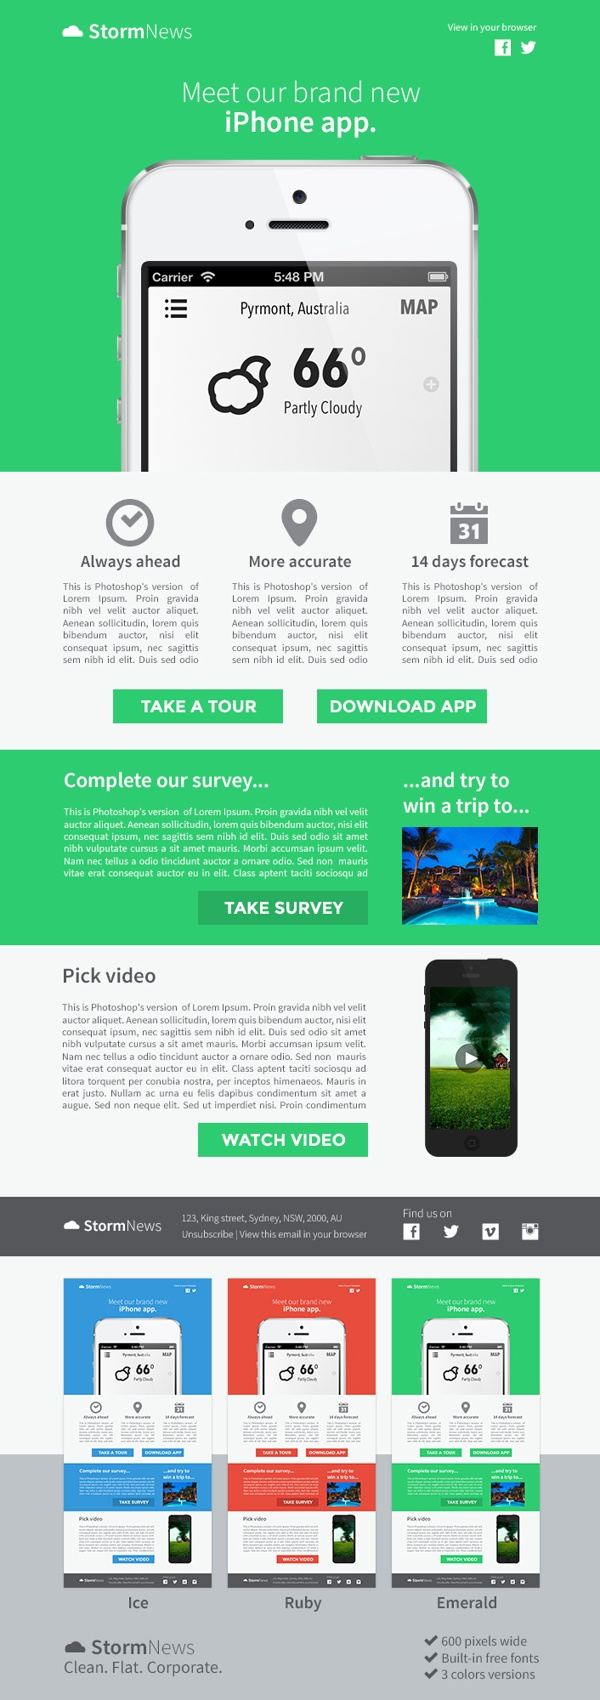 Awesome 1 Page Brochure Template Big 1 Year Experience Resume Format For Software Developer Shaped 10 Window Envelope Template 1st Job Resume Examples Young 2 Round Label Template Black2014 Resume Format 10 Best Images About E Blast Design On Pinterest | Behance, Oregon ..